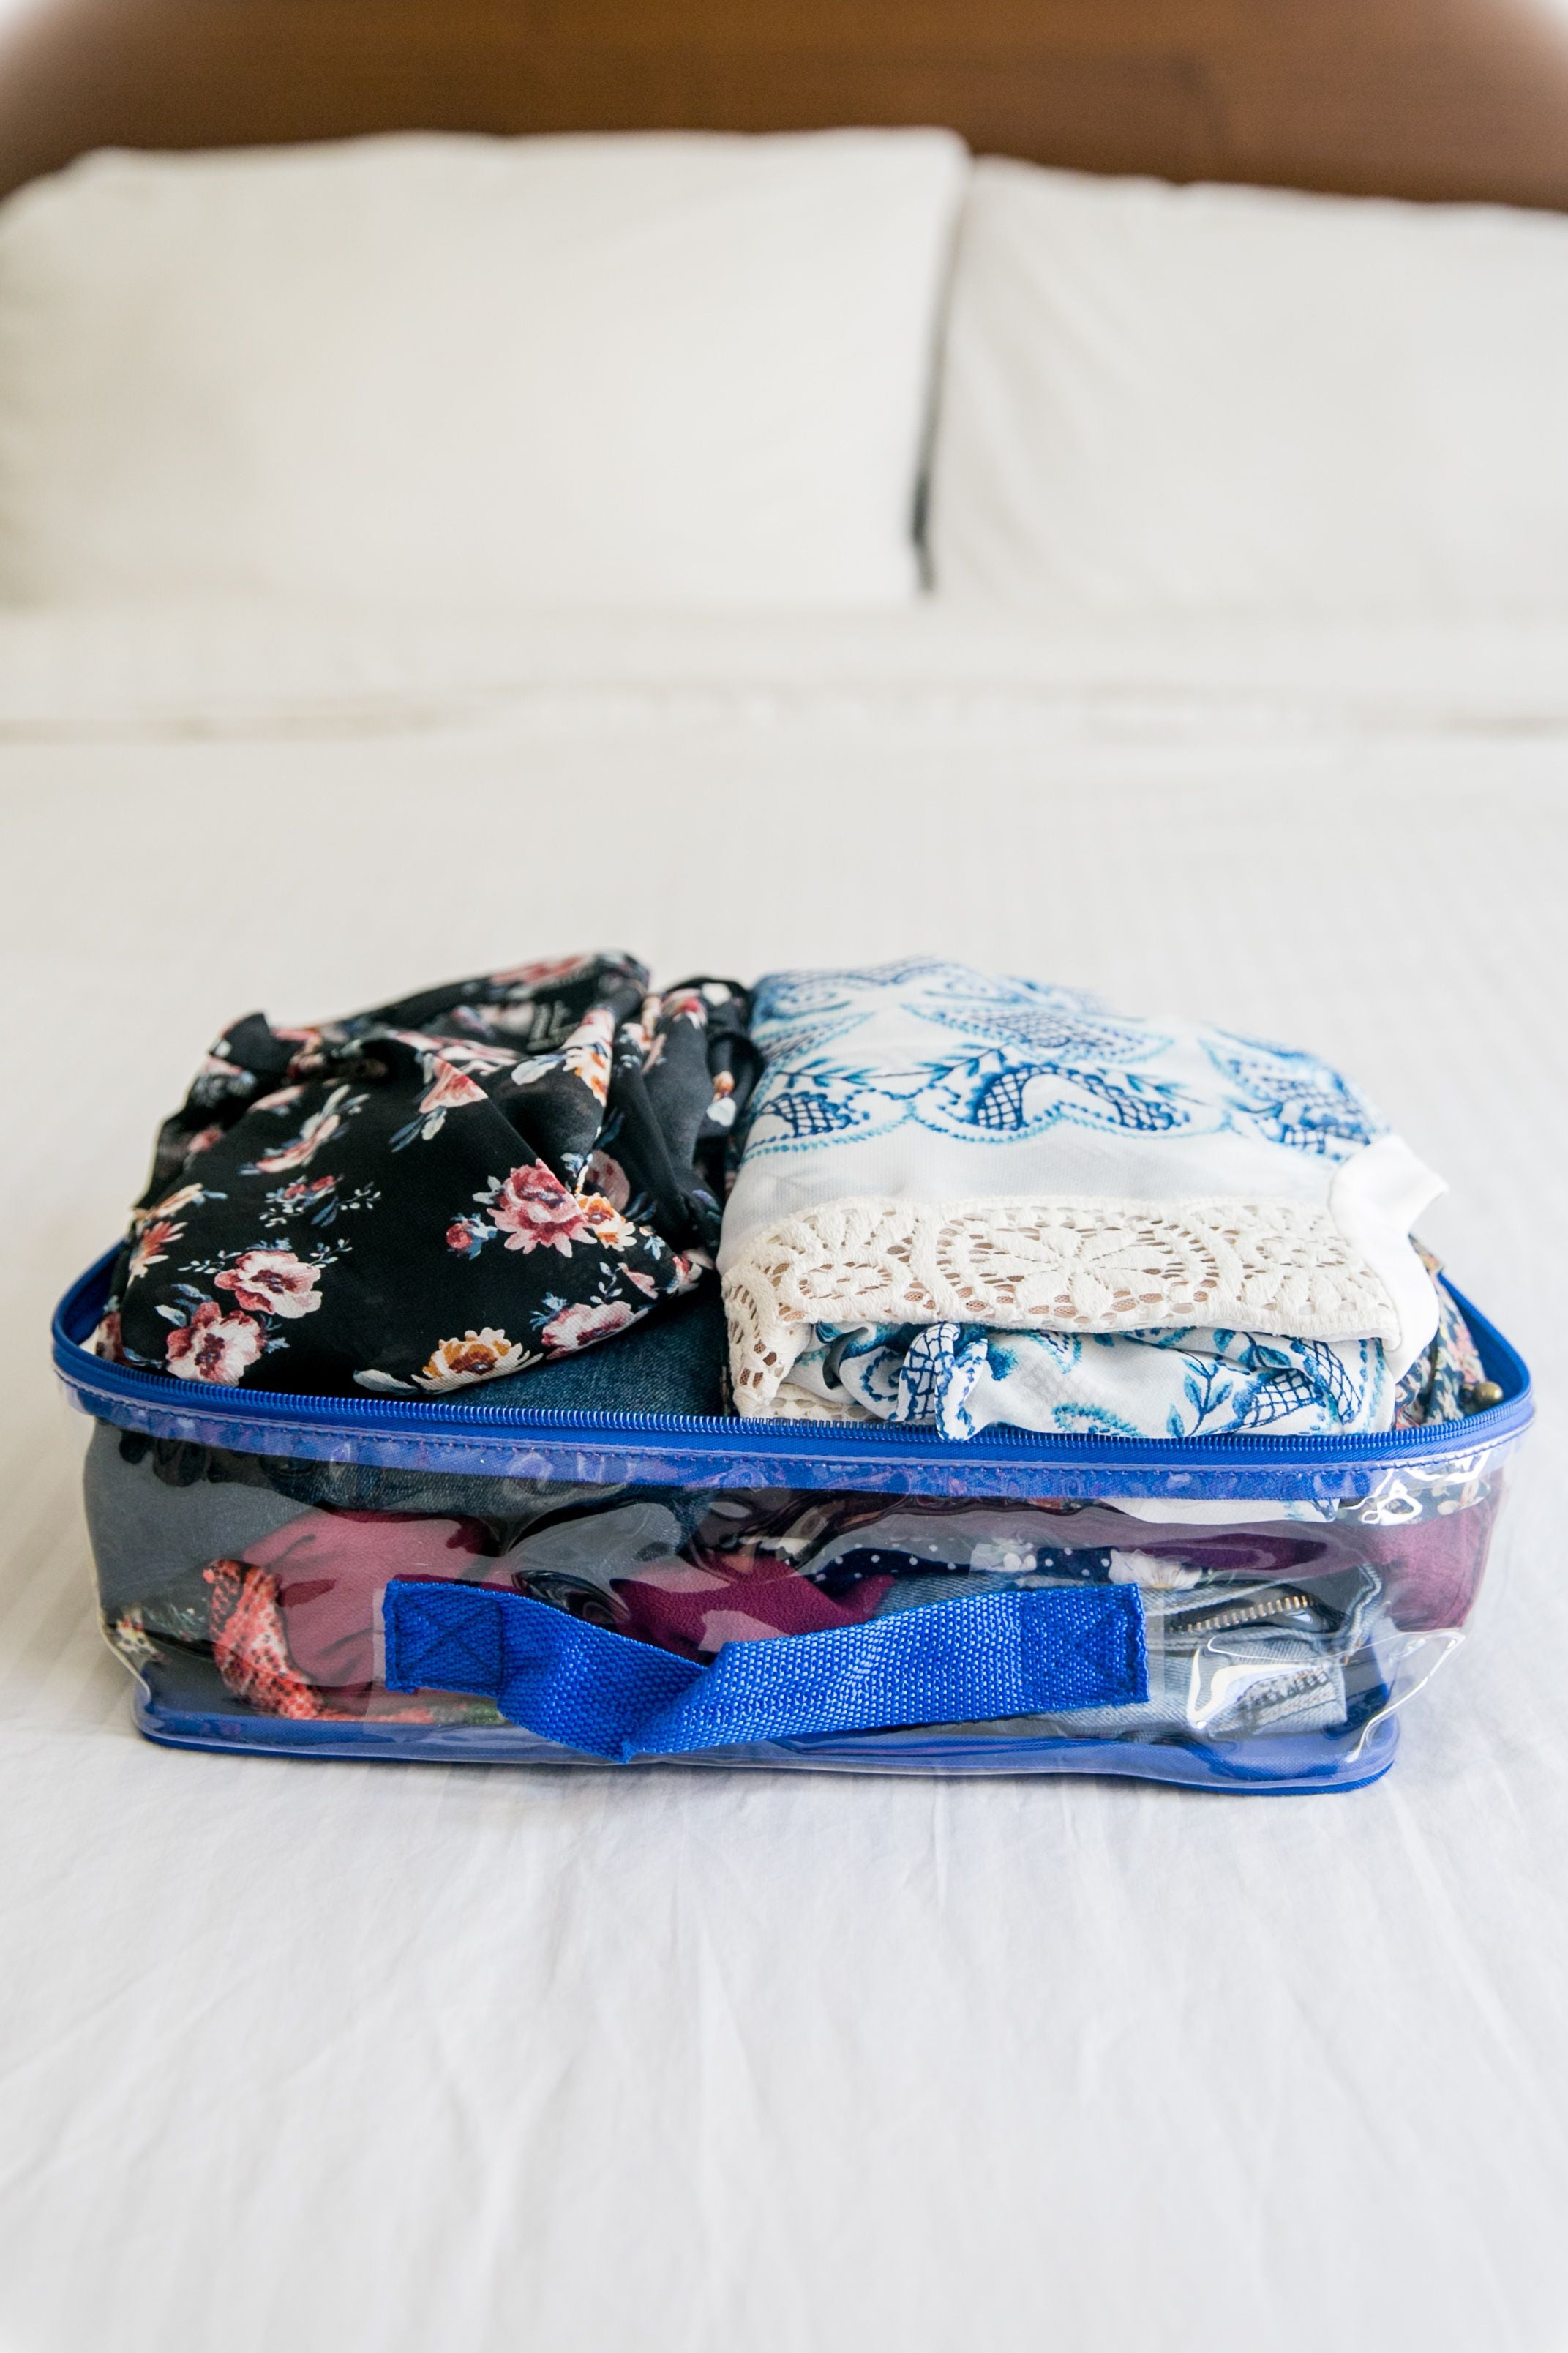 Overnight trip outfits packed in royal blue cube